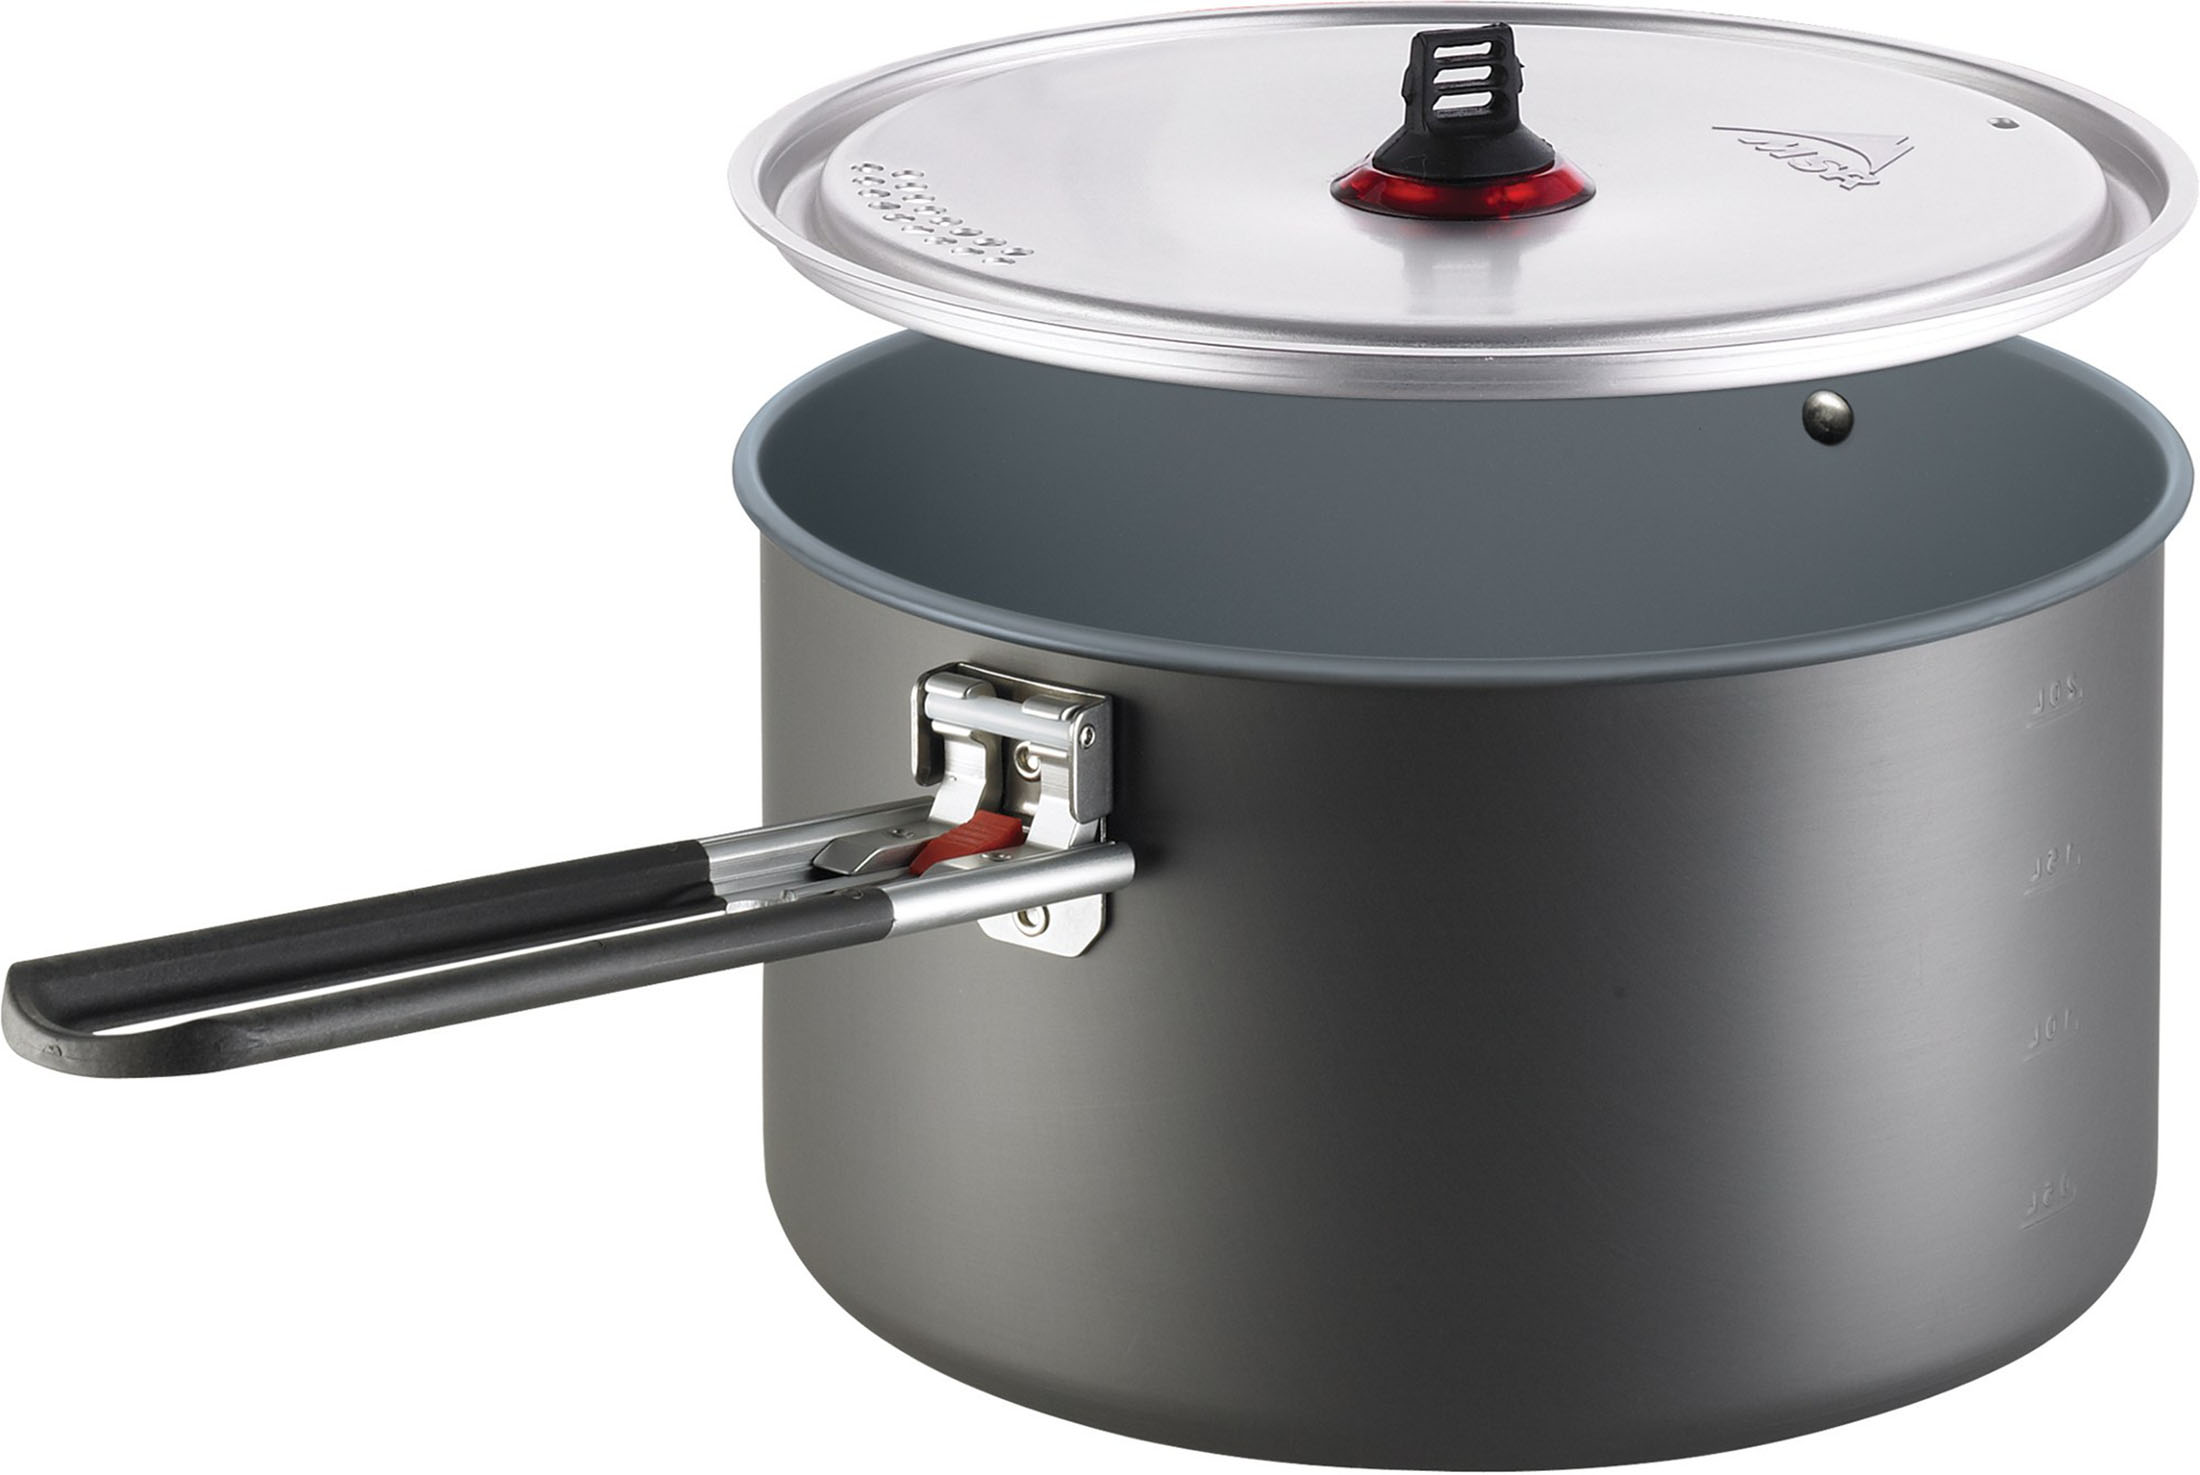 MSR Ceramic cooking pot